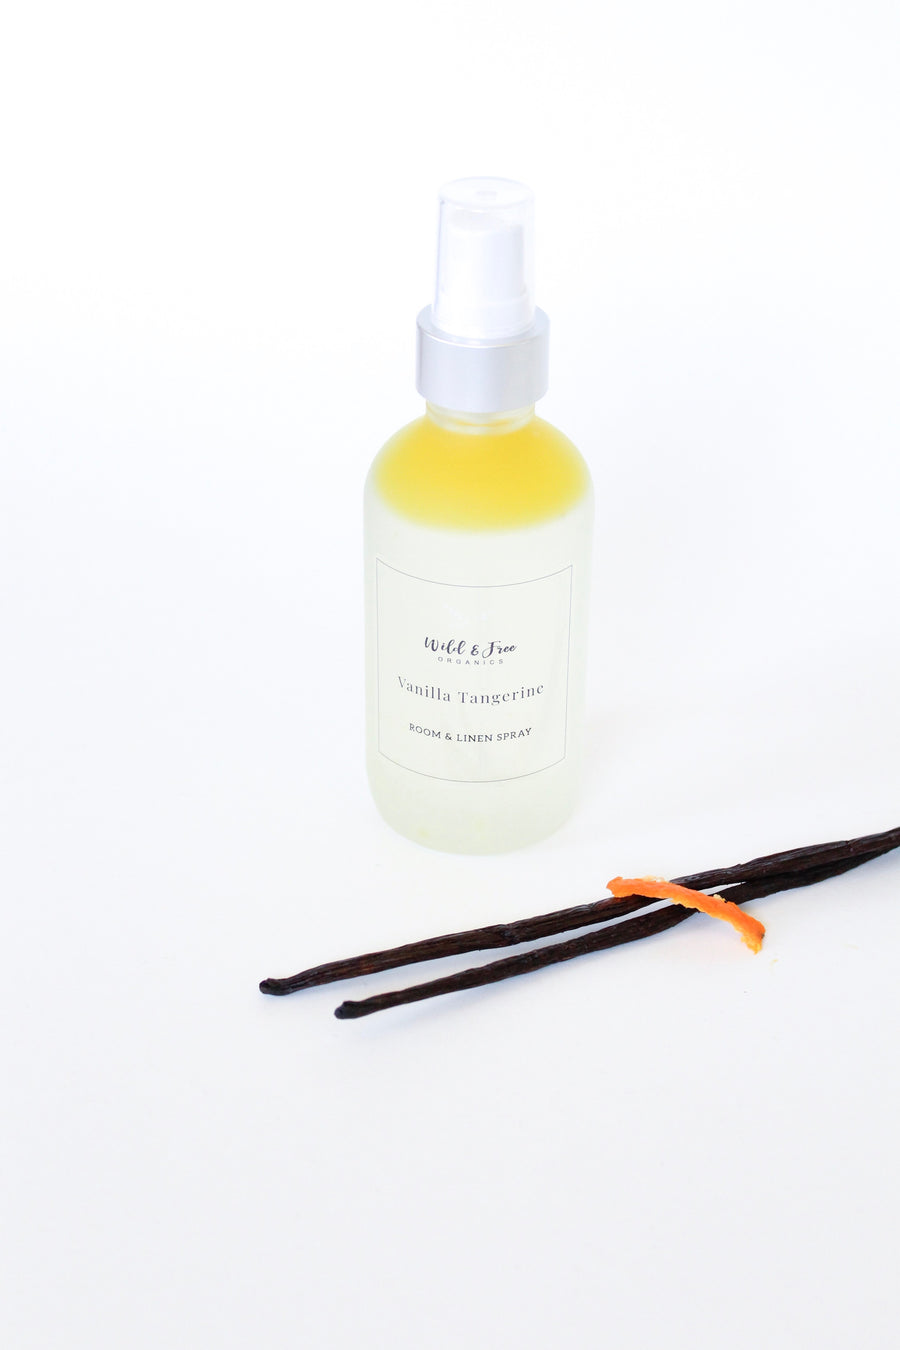 Vanilla Tangerine Room & Linen Spray